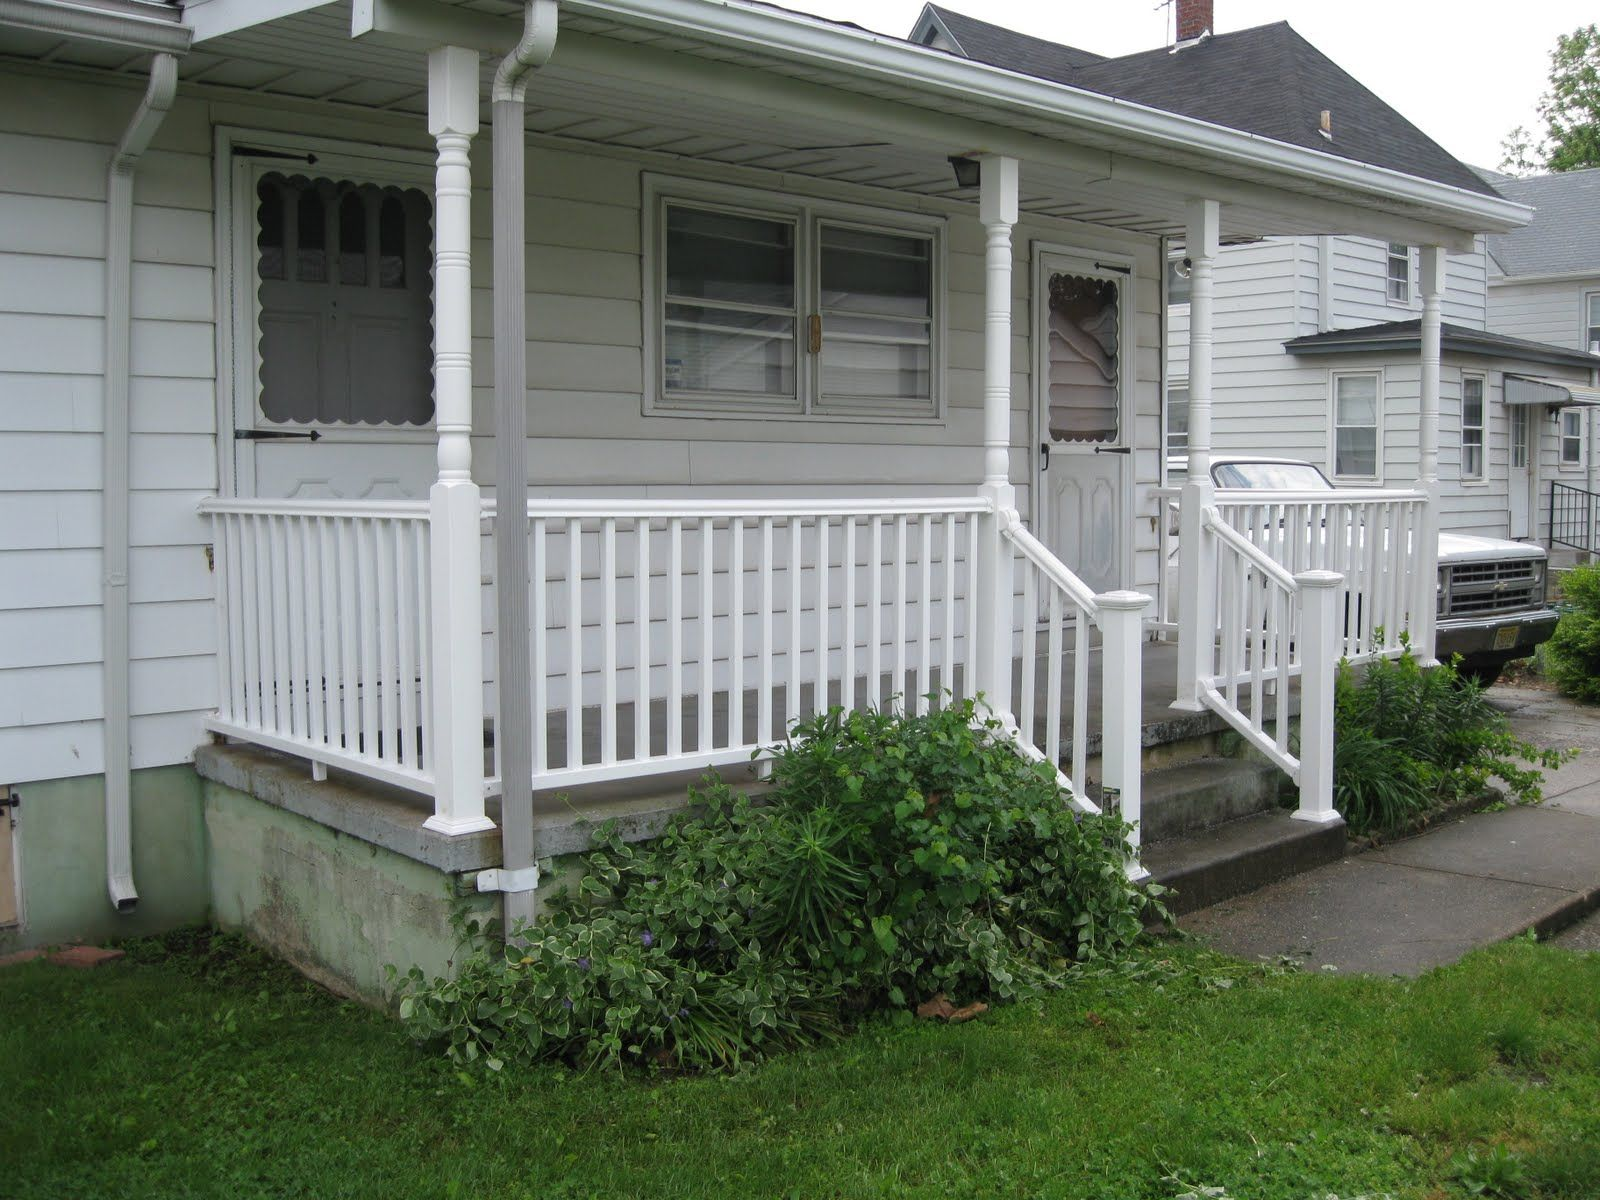 Small front porches porch railing front porch Front porch blueprints